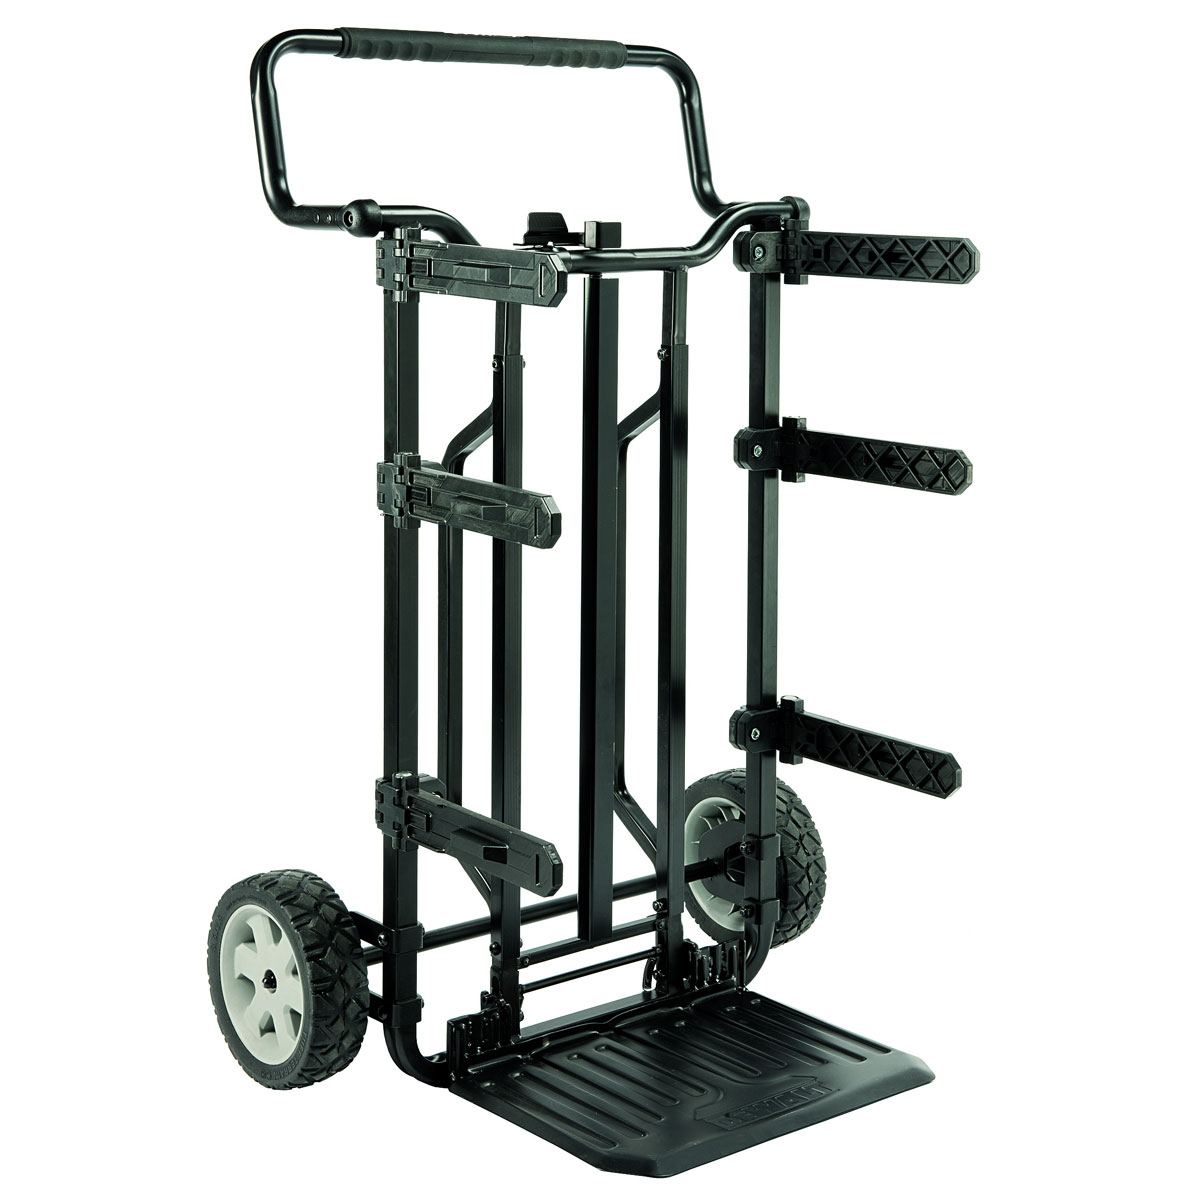 DEWALT DSCARRIER 1-70-324 TOUGHSYSTEM HEAVY DUTY TROLLEY